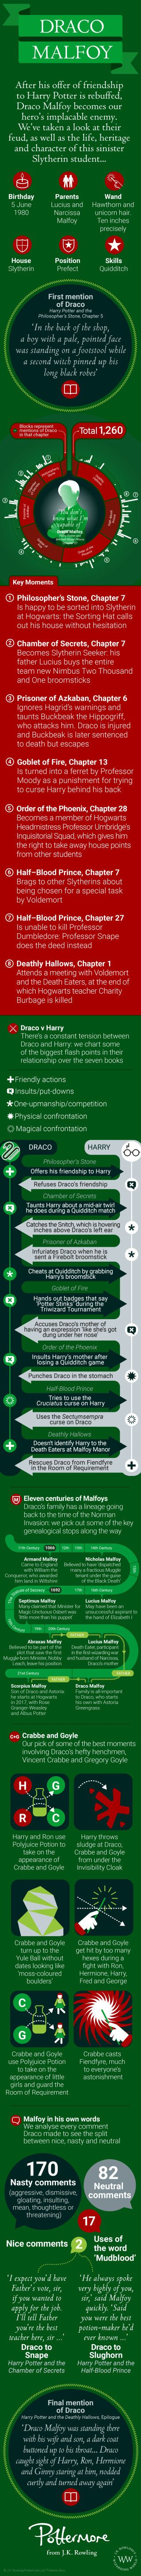 All About Draco Malfoy Mobile